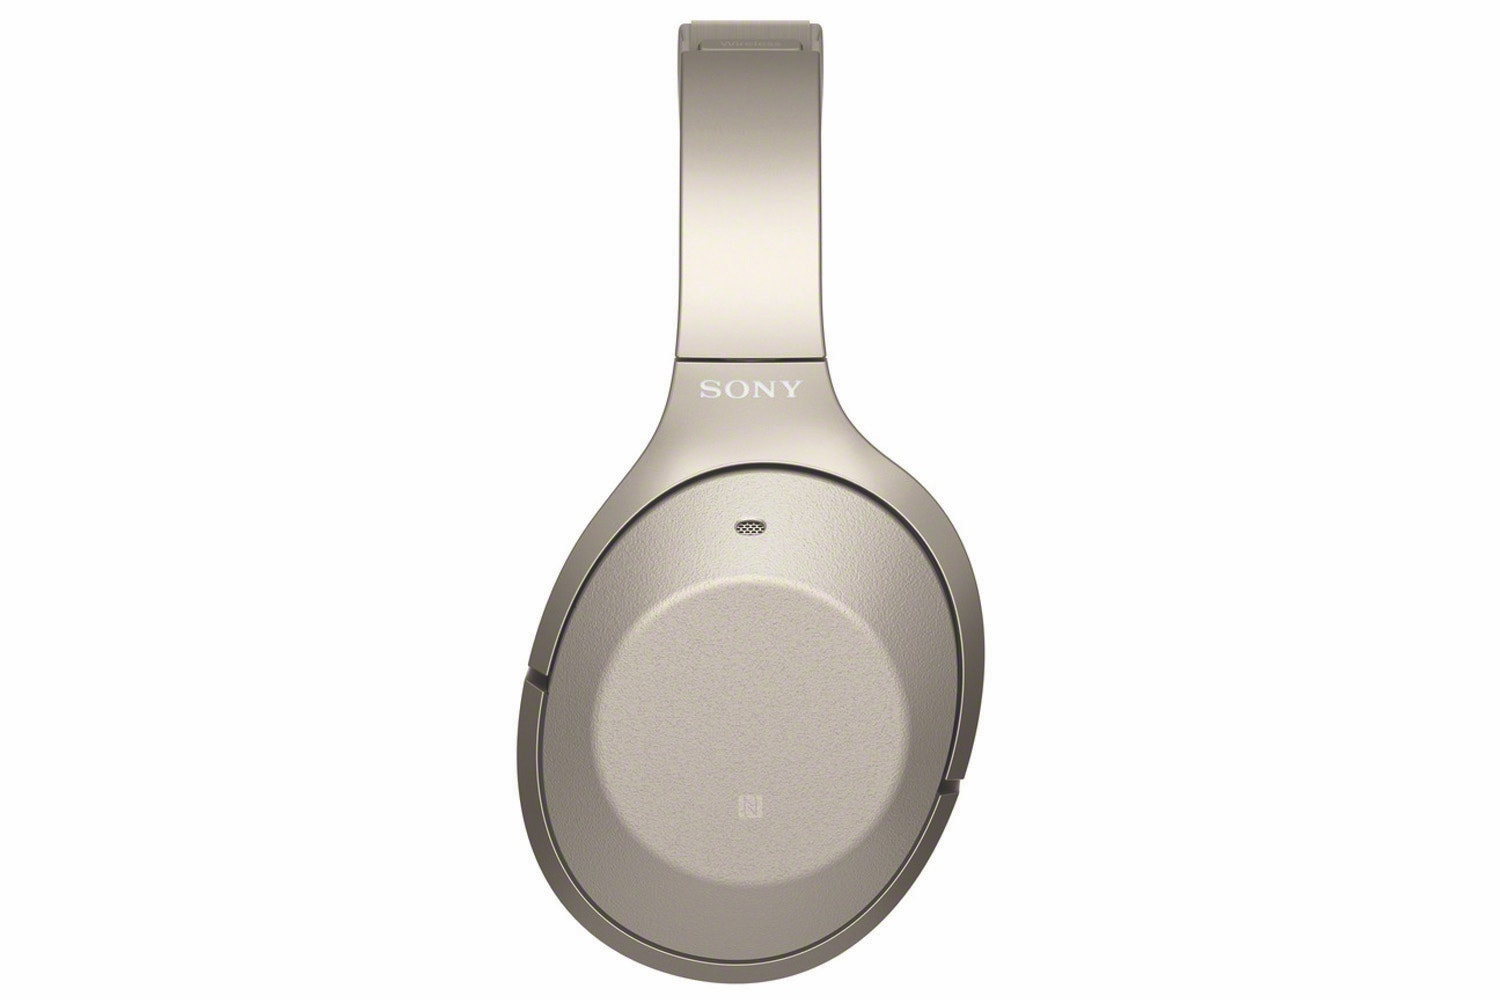 Sony WH-1000XM2 Wireless Noise Cancelling Headphones